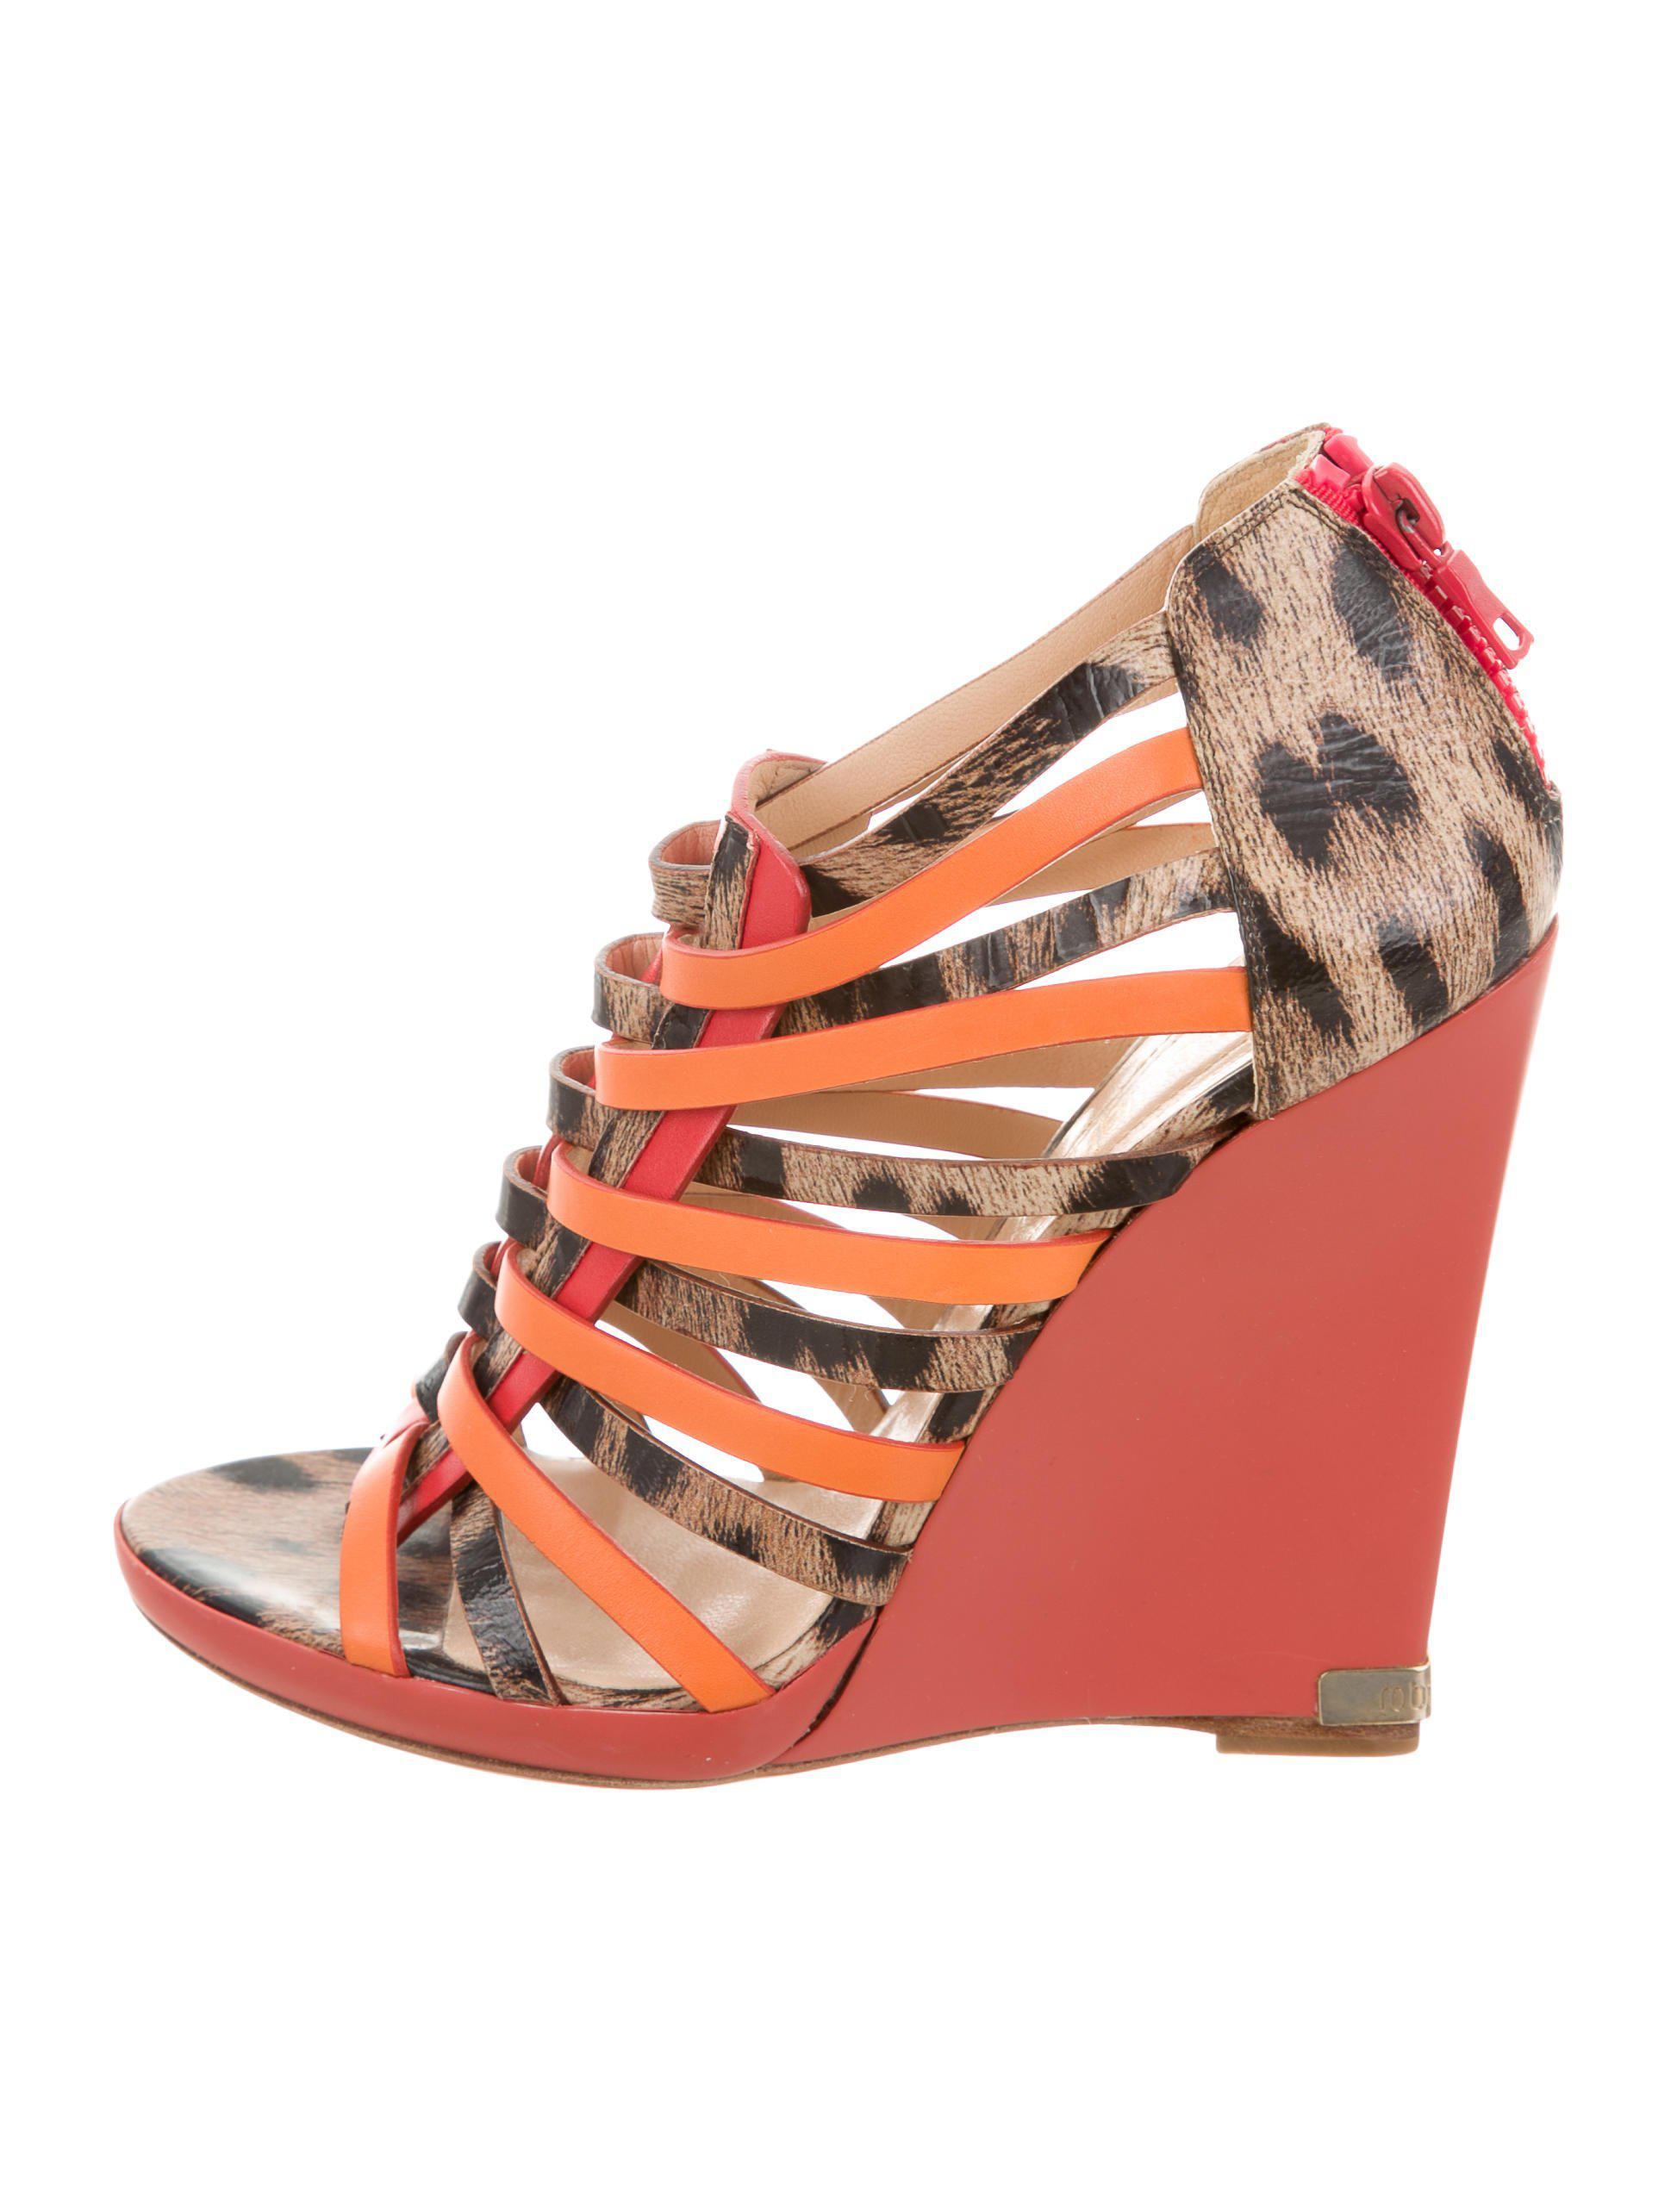 60cdc54b171d Lyst - Roberto Cavalli Animal Print Gladiator Wedges Tan in Natural